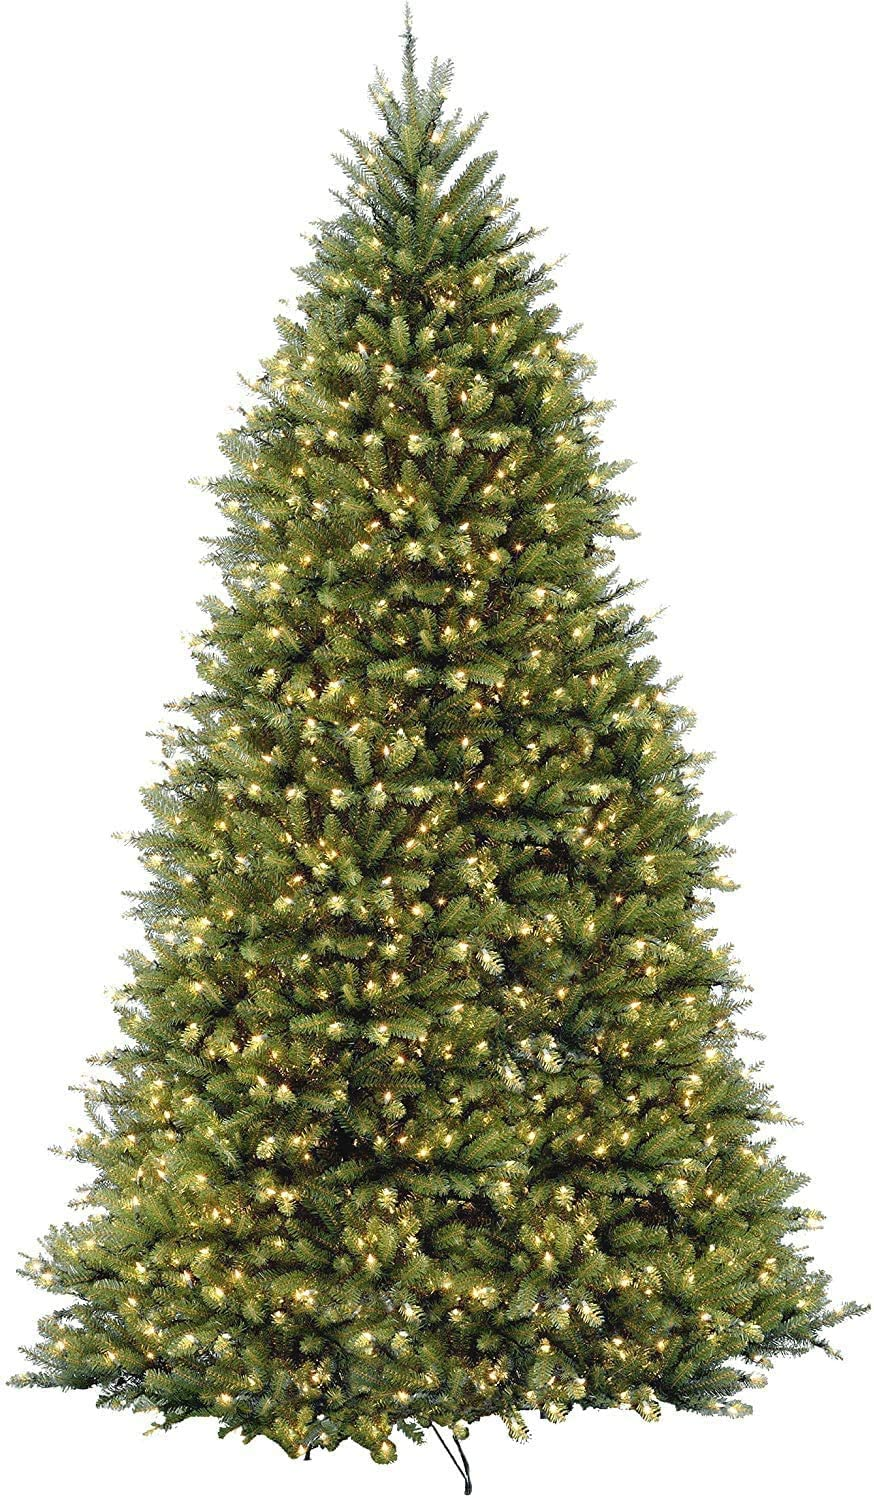 National Tree Company Pre-lit Artificial Christmas Tree | Includes Pre-strung White Lights and Stand | Dunhill Fir - 12 ft